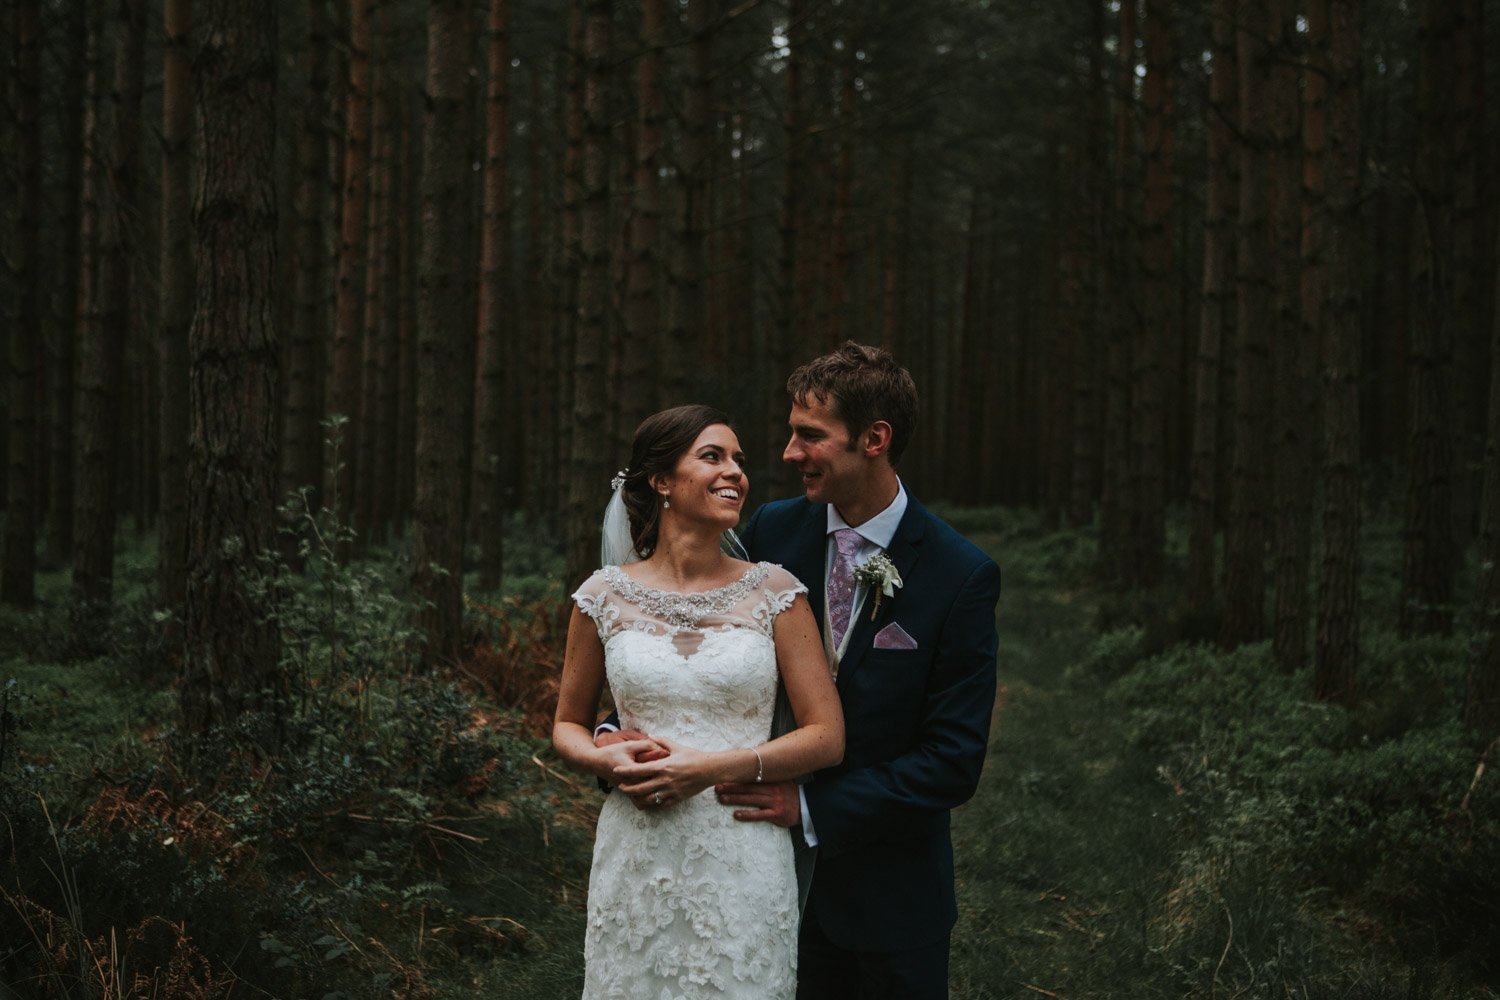 Healey Barn Wedding - Bride and Groom Portraits in the woods